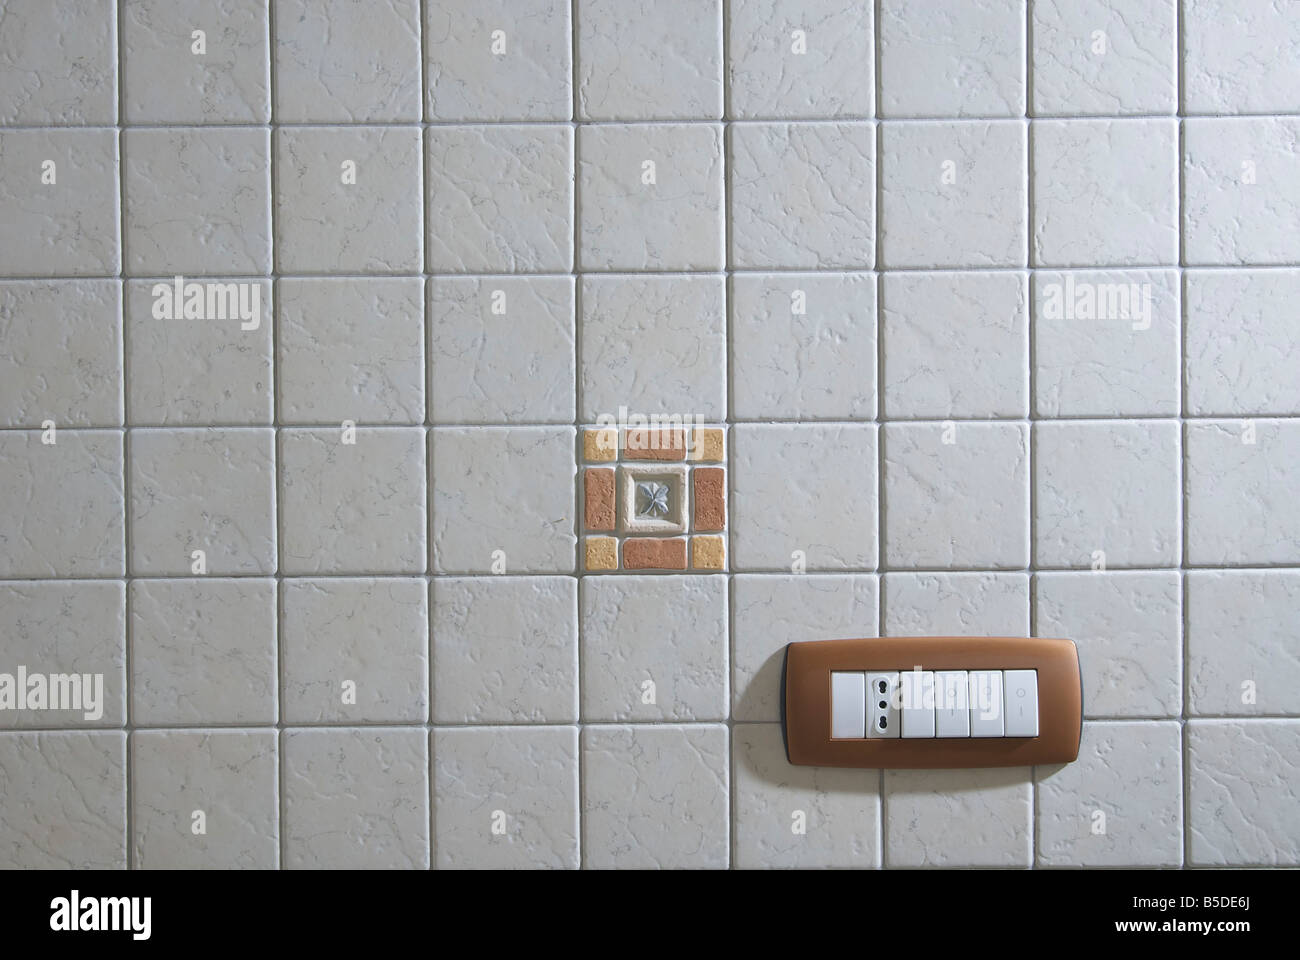 electric light switches and outlet Stock Photo: 20580186 - Alamy